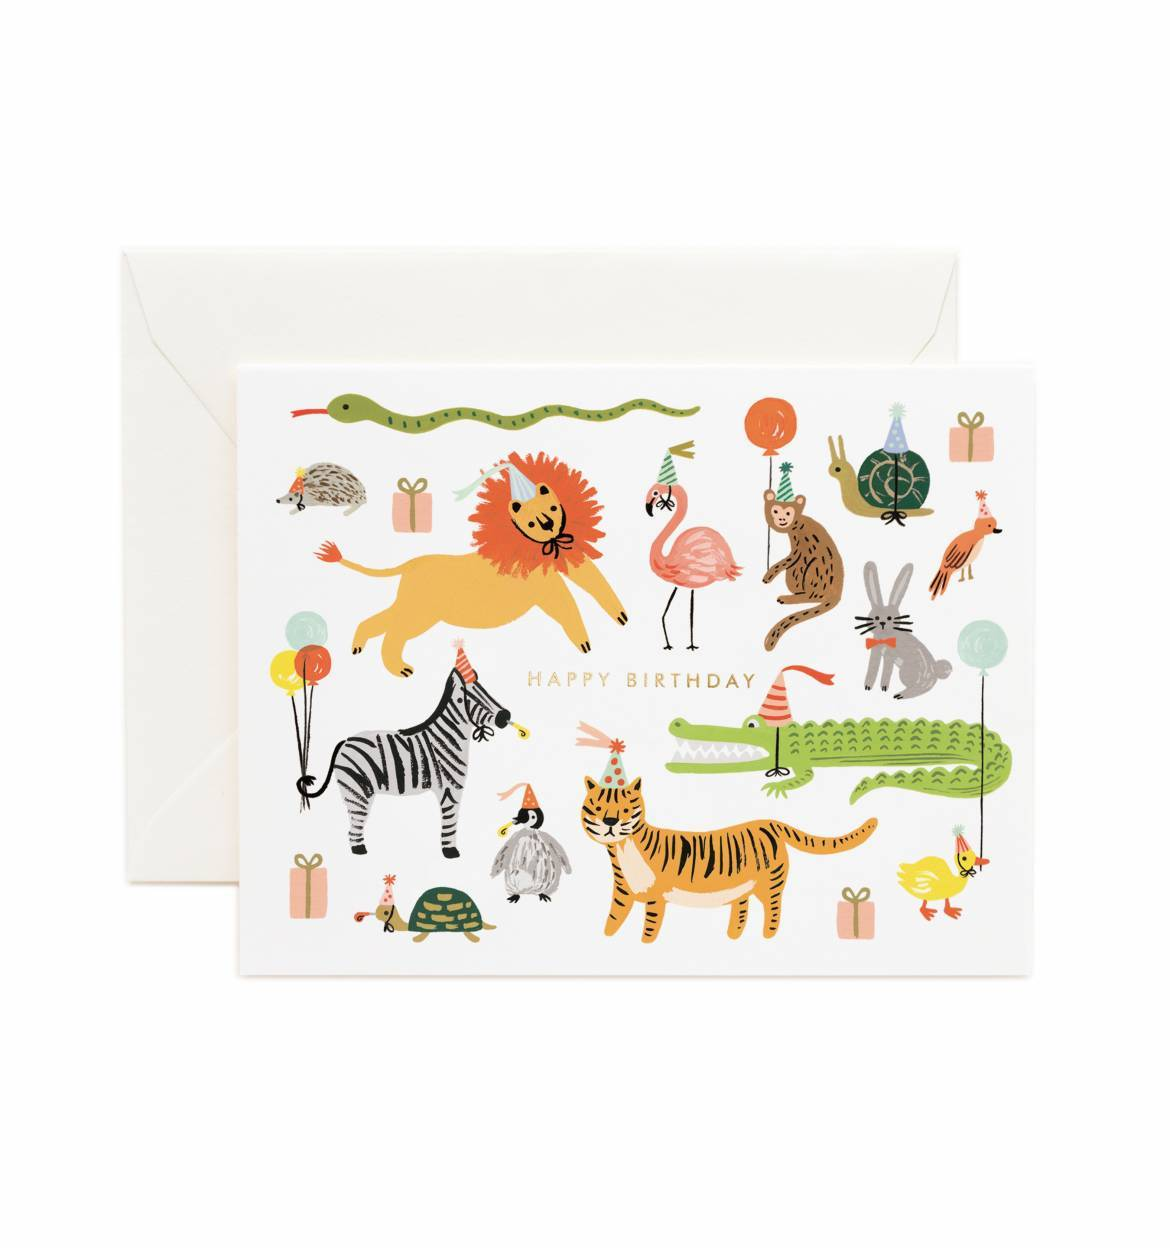 Party Animals Birthday Card - Magnolia Jewels & More